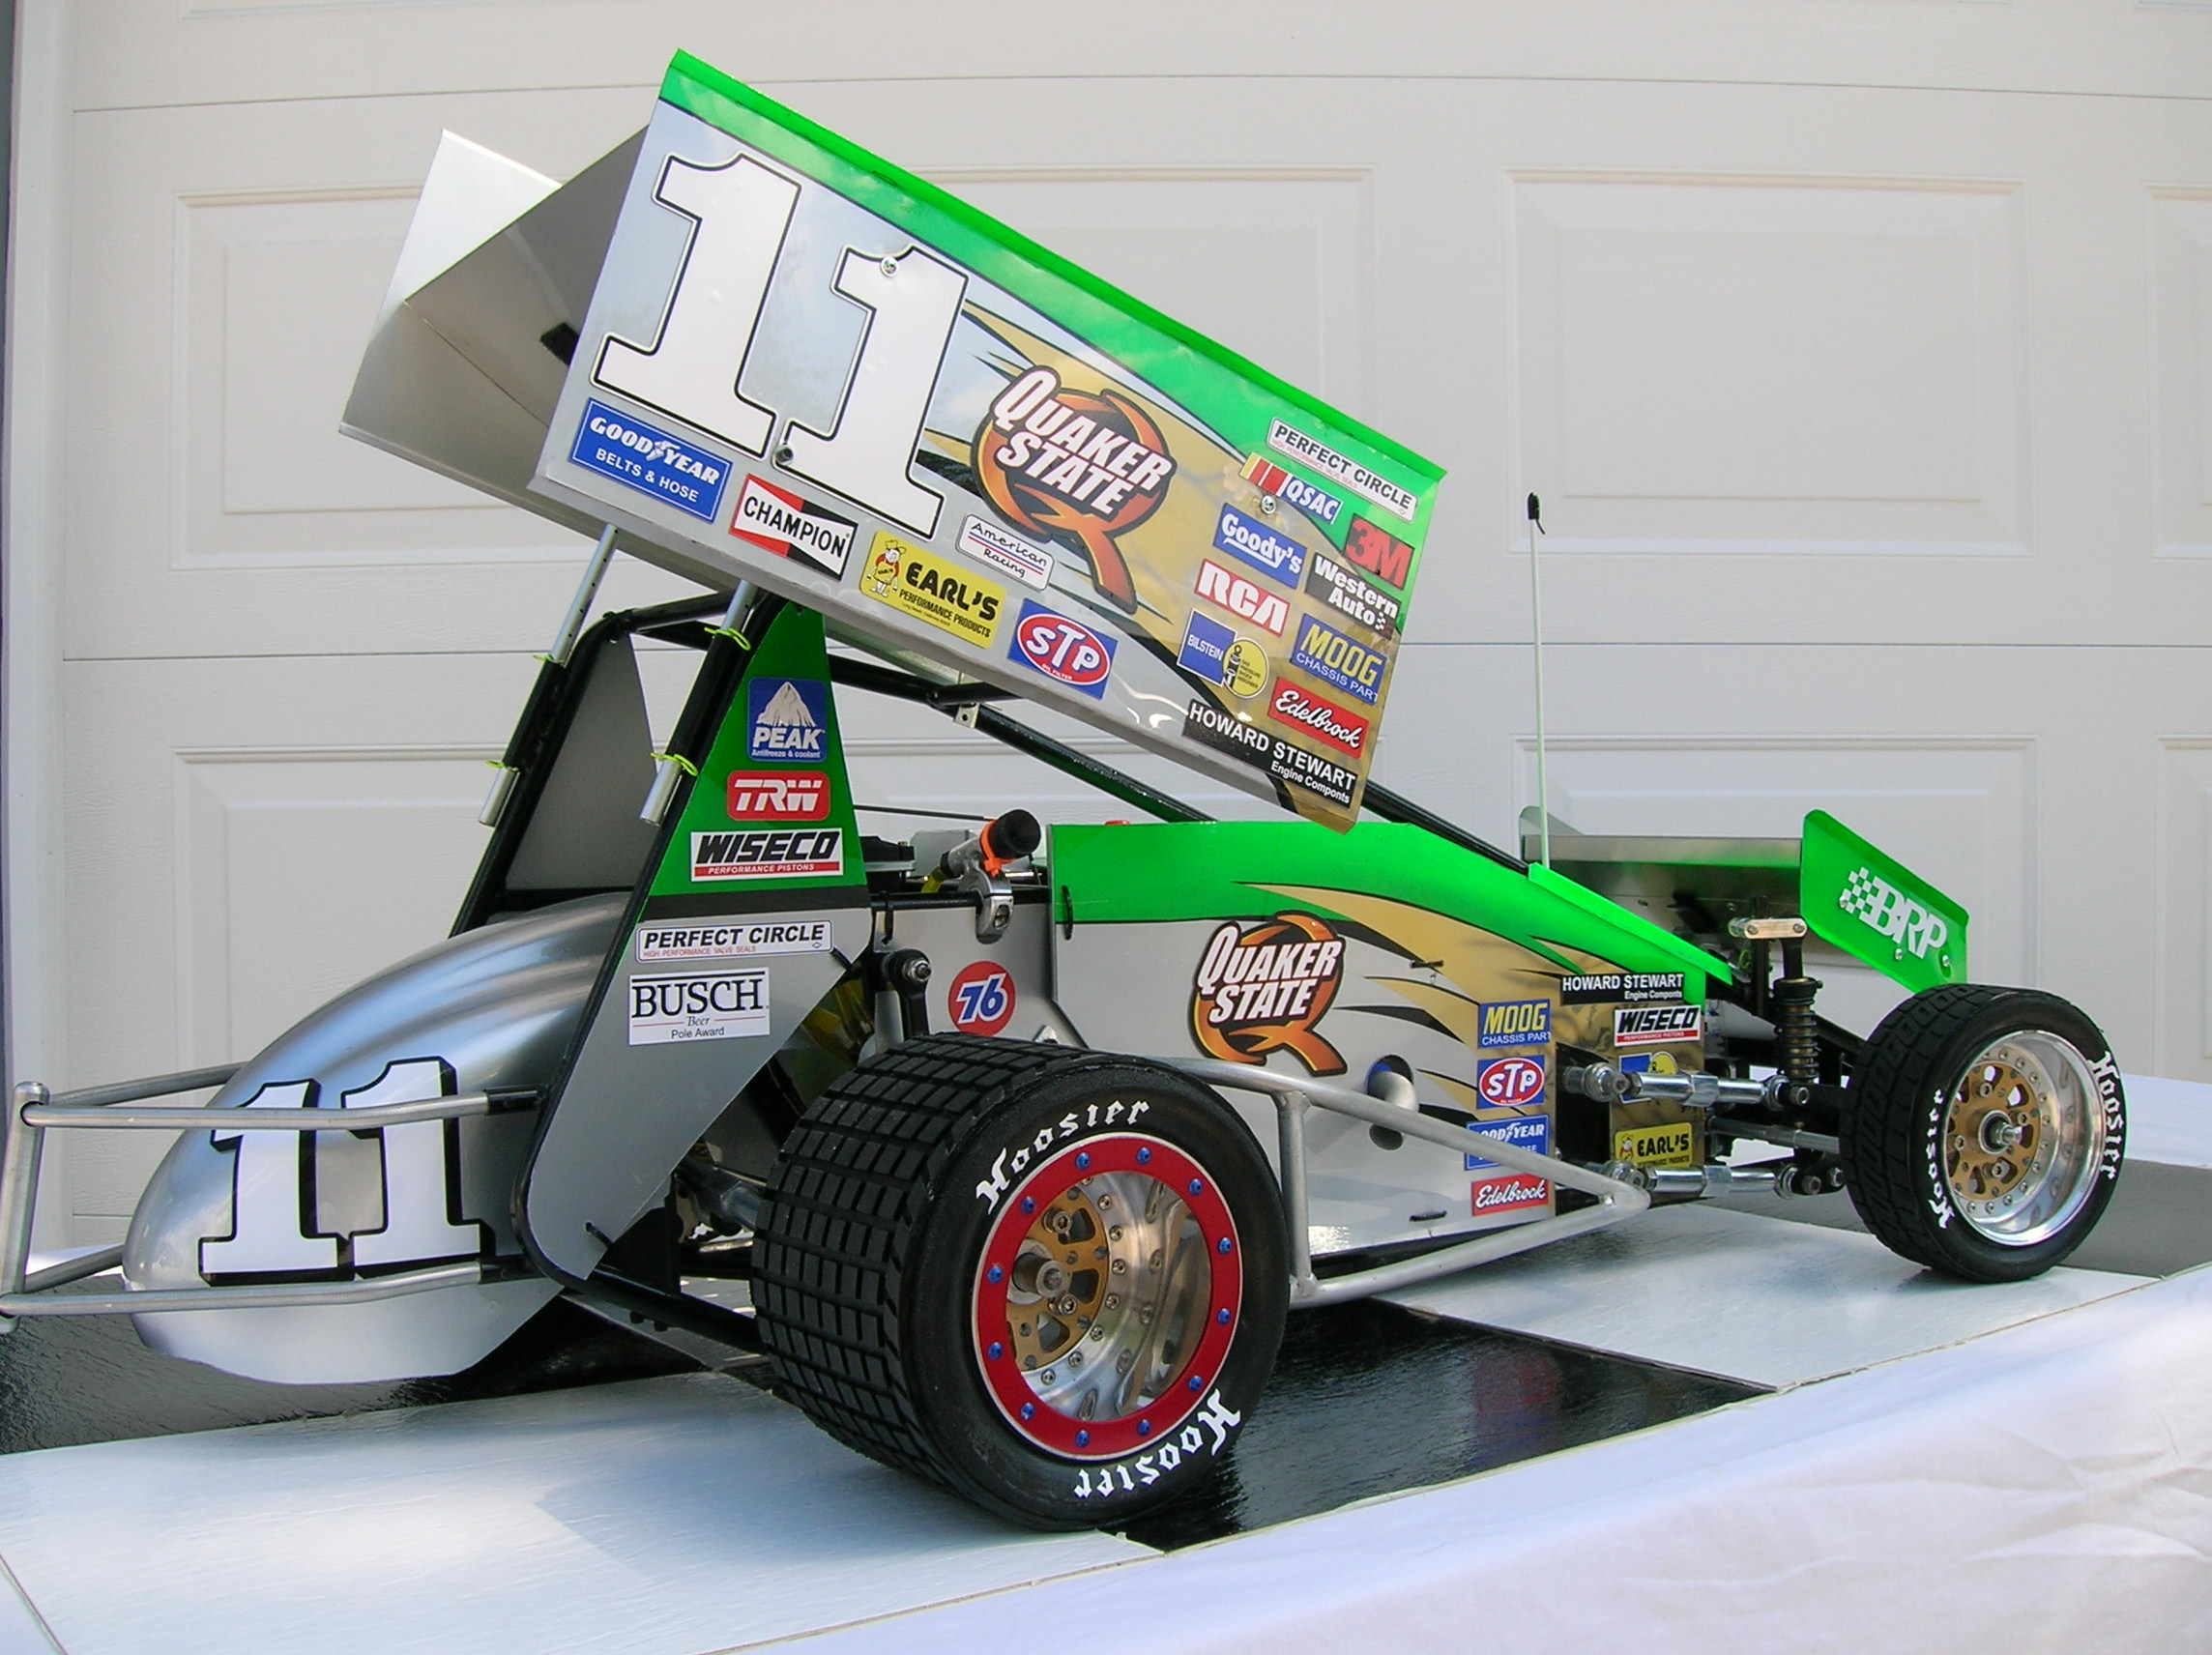 Pro1 1/4 Scale Racing......Designers and Builders of Quarter Scale ...